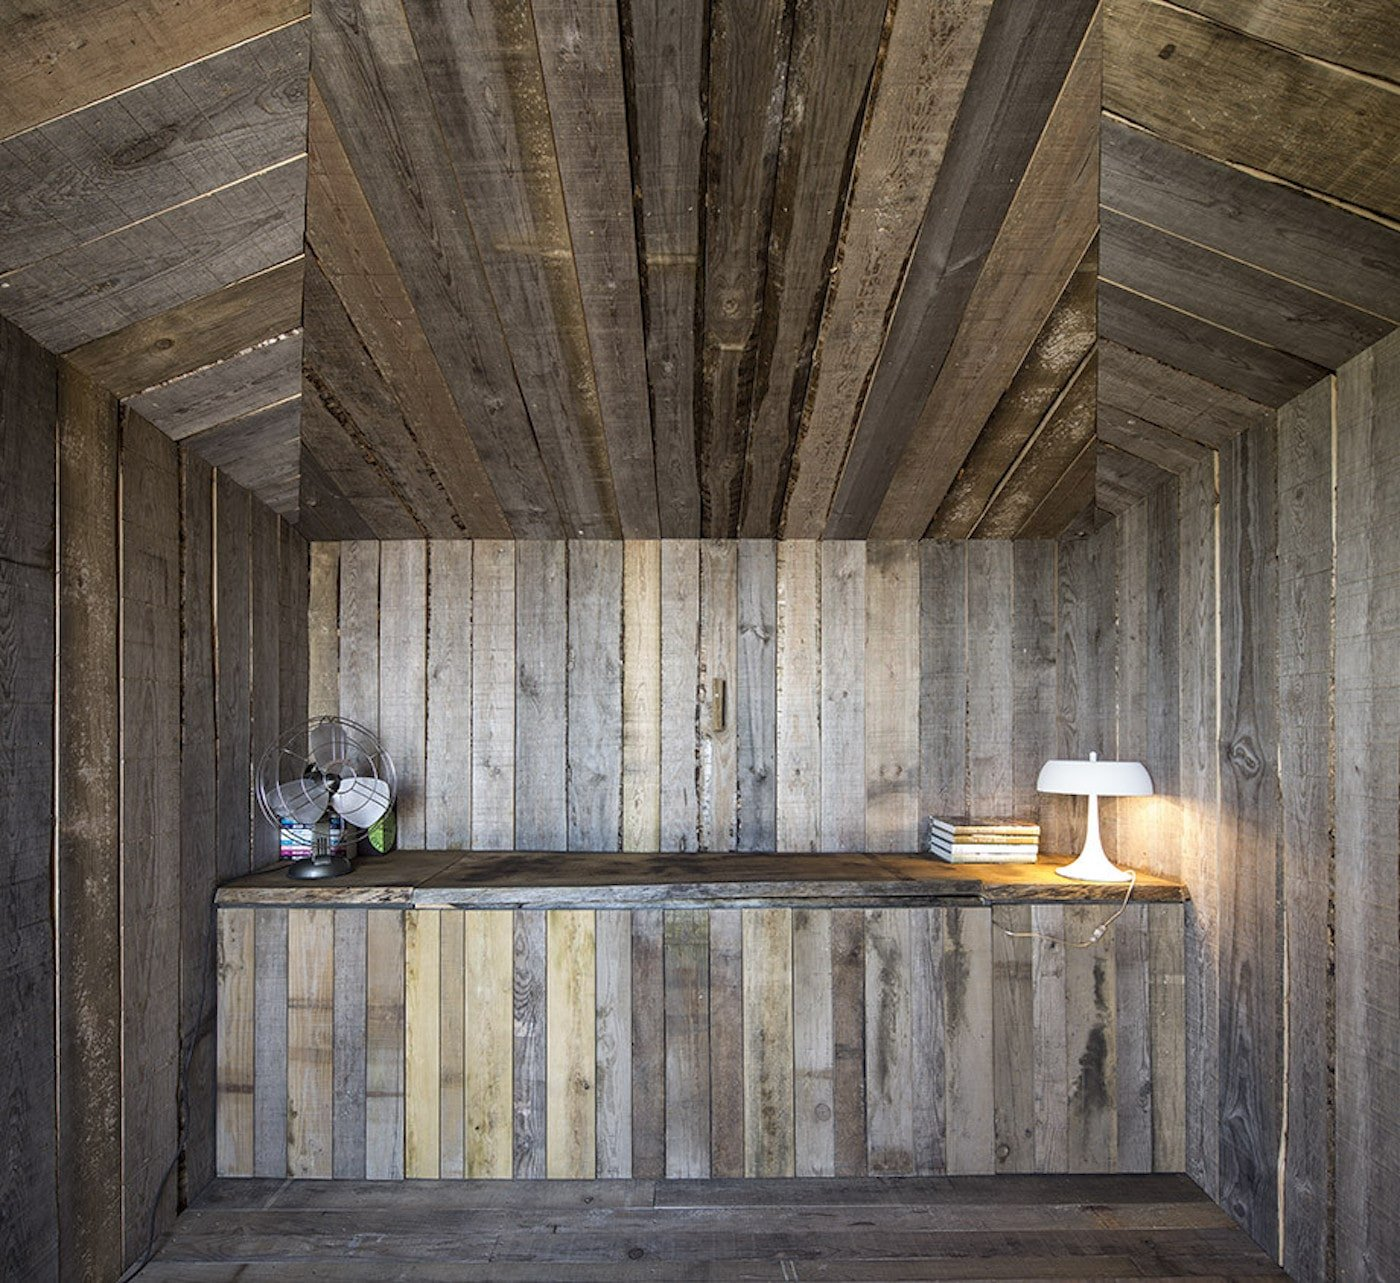 Timber kitchen bench in recycled timber cabins